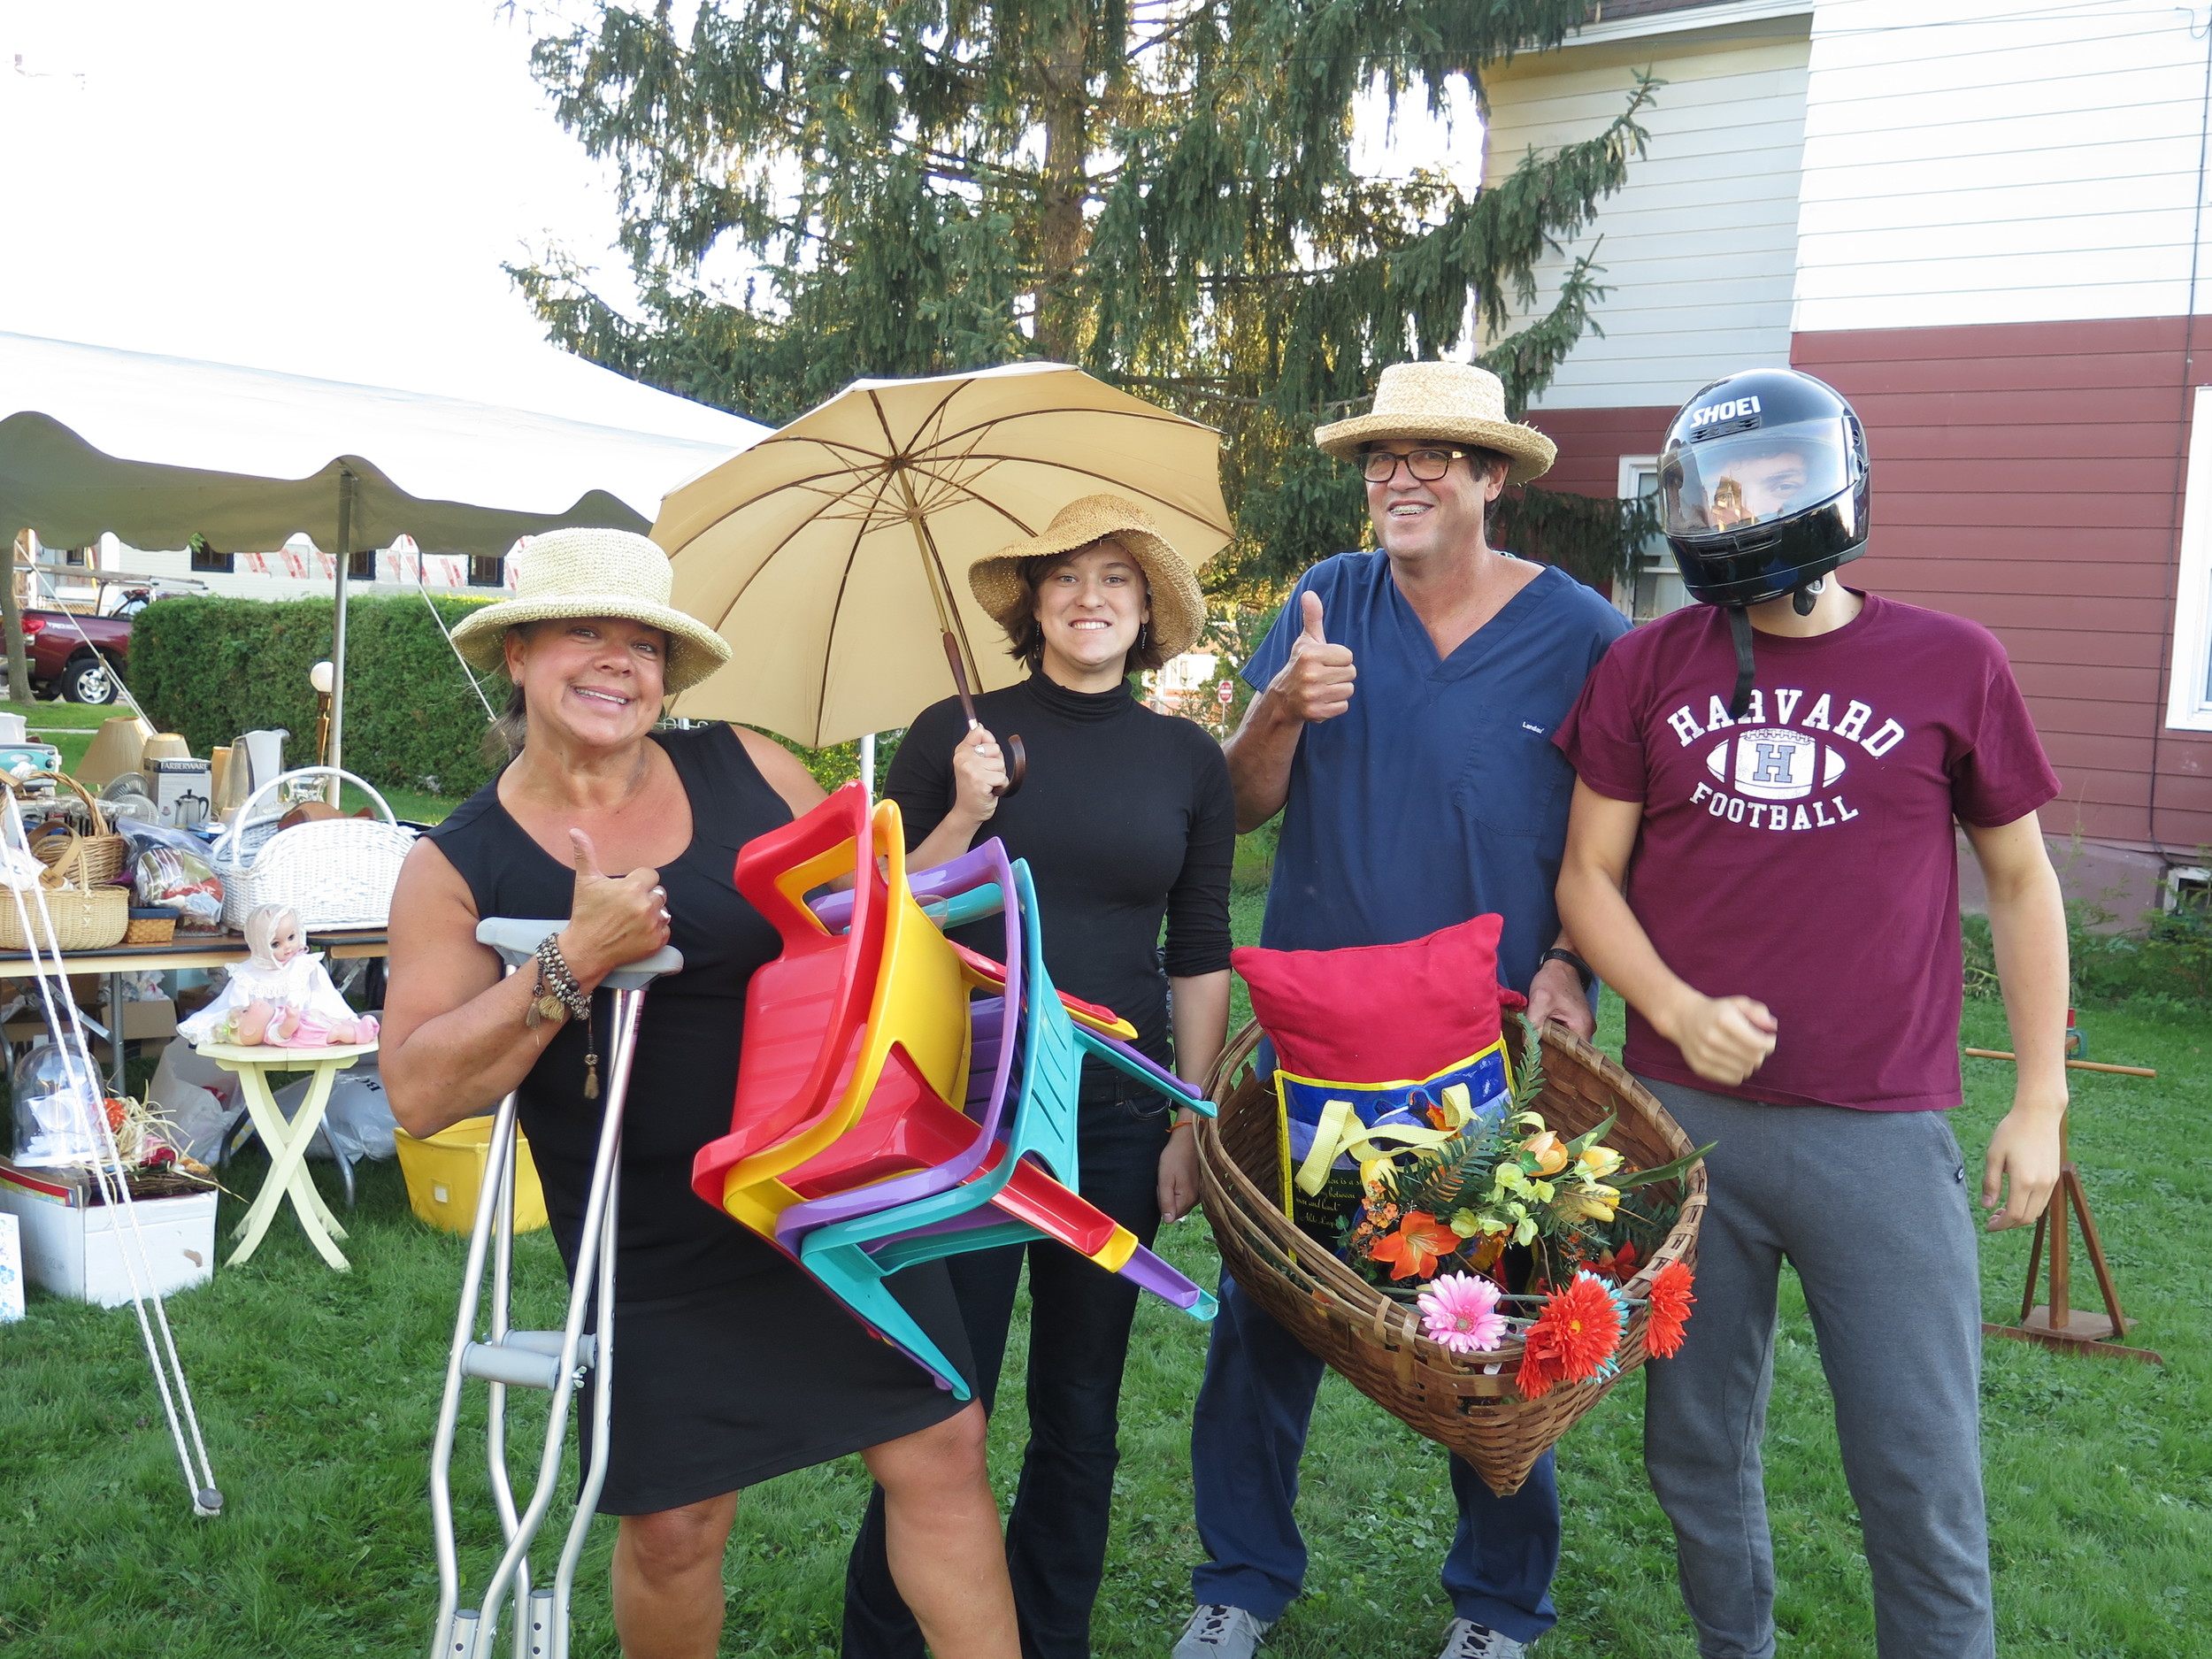 the ulrich / verderber clan show off some of the items at the community yard sale that fiddlehead hosts every year!